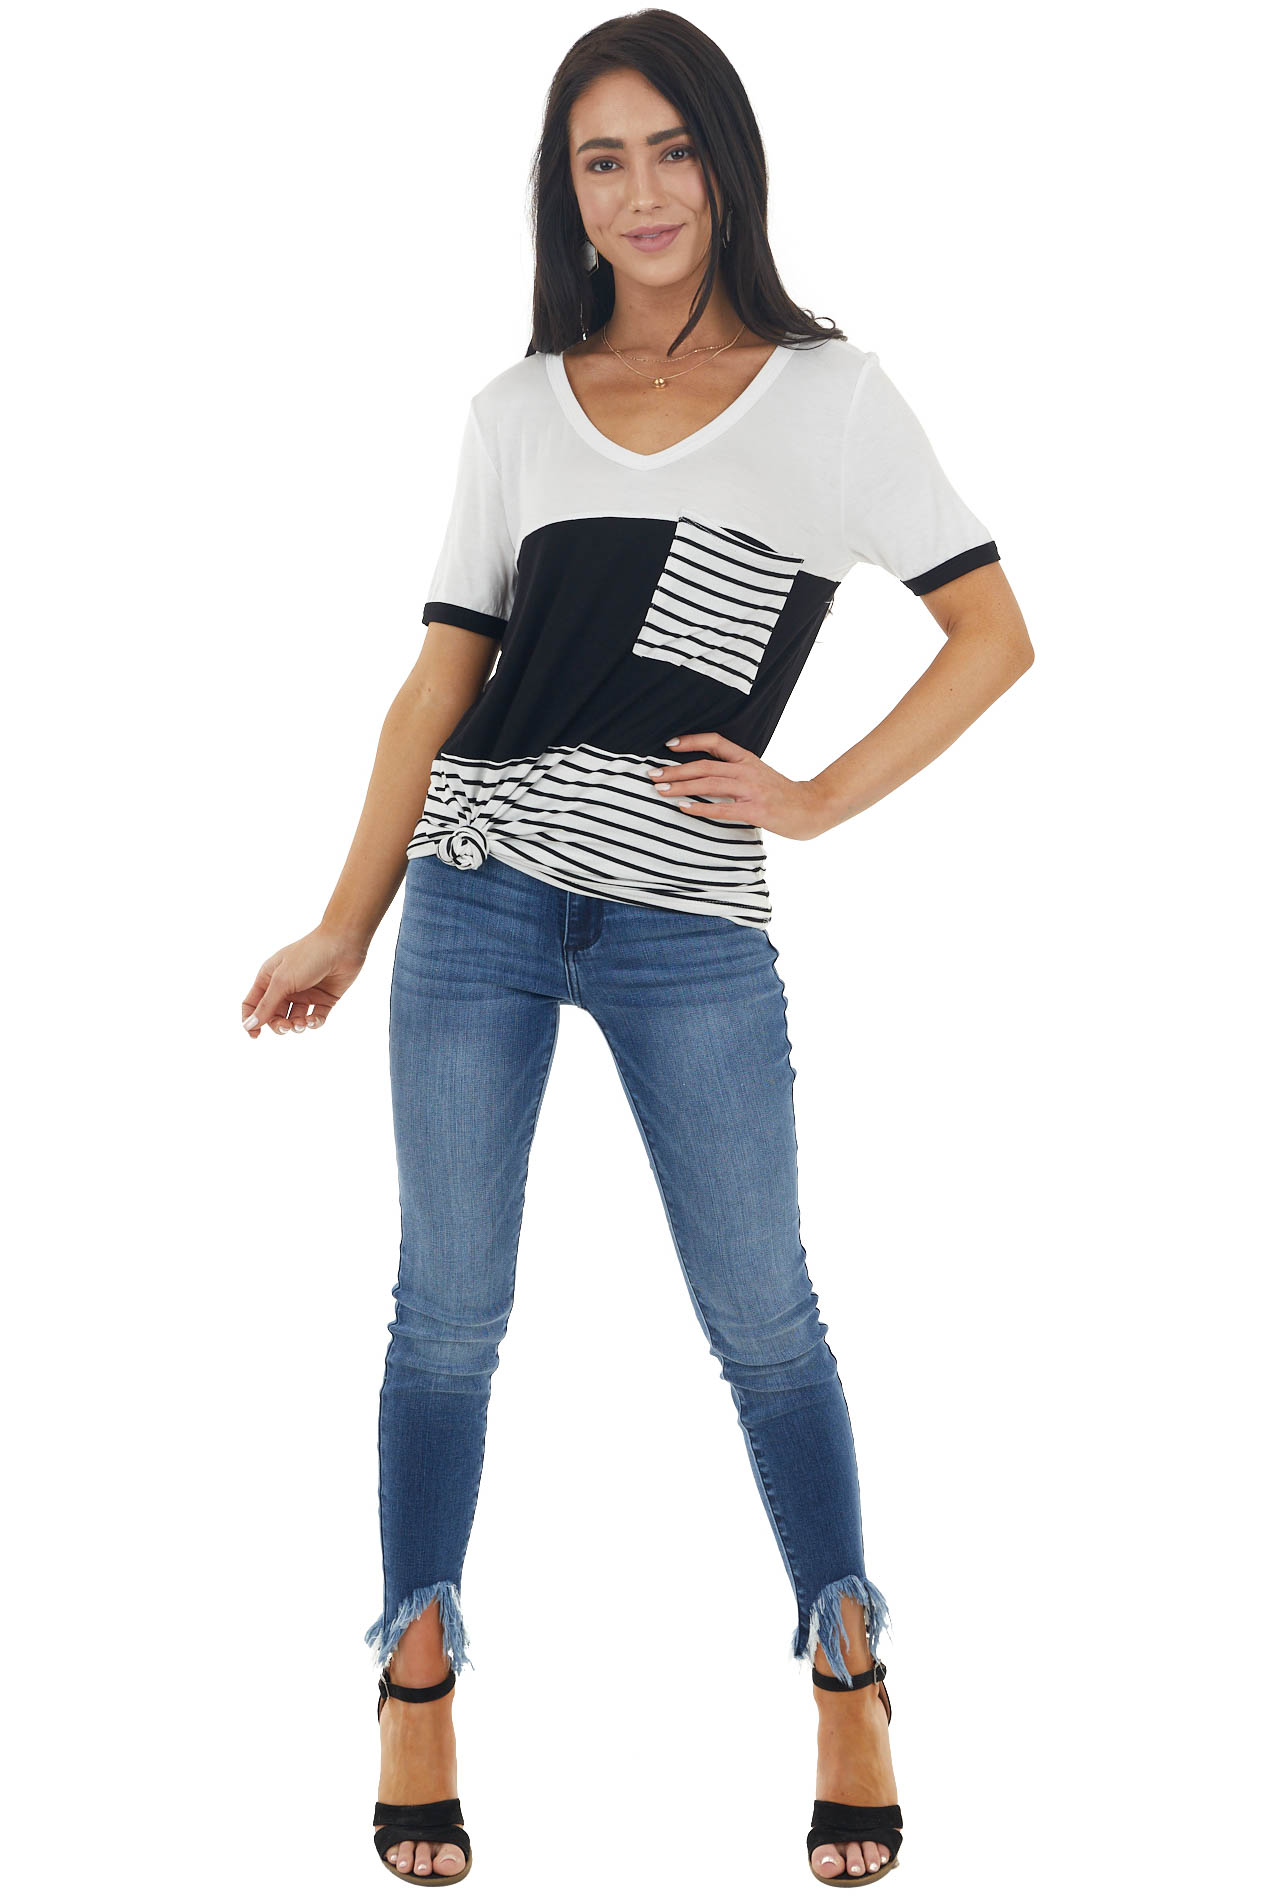 Ivory and Black Colorblock Knit Top with Striped Pocket